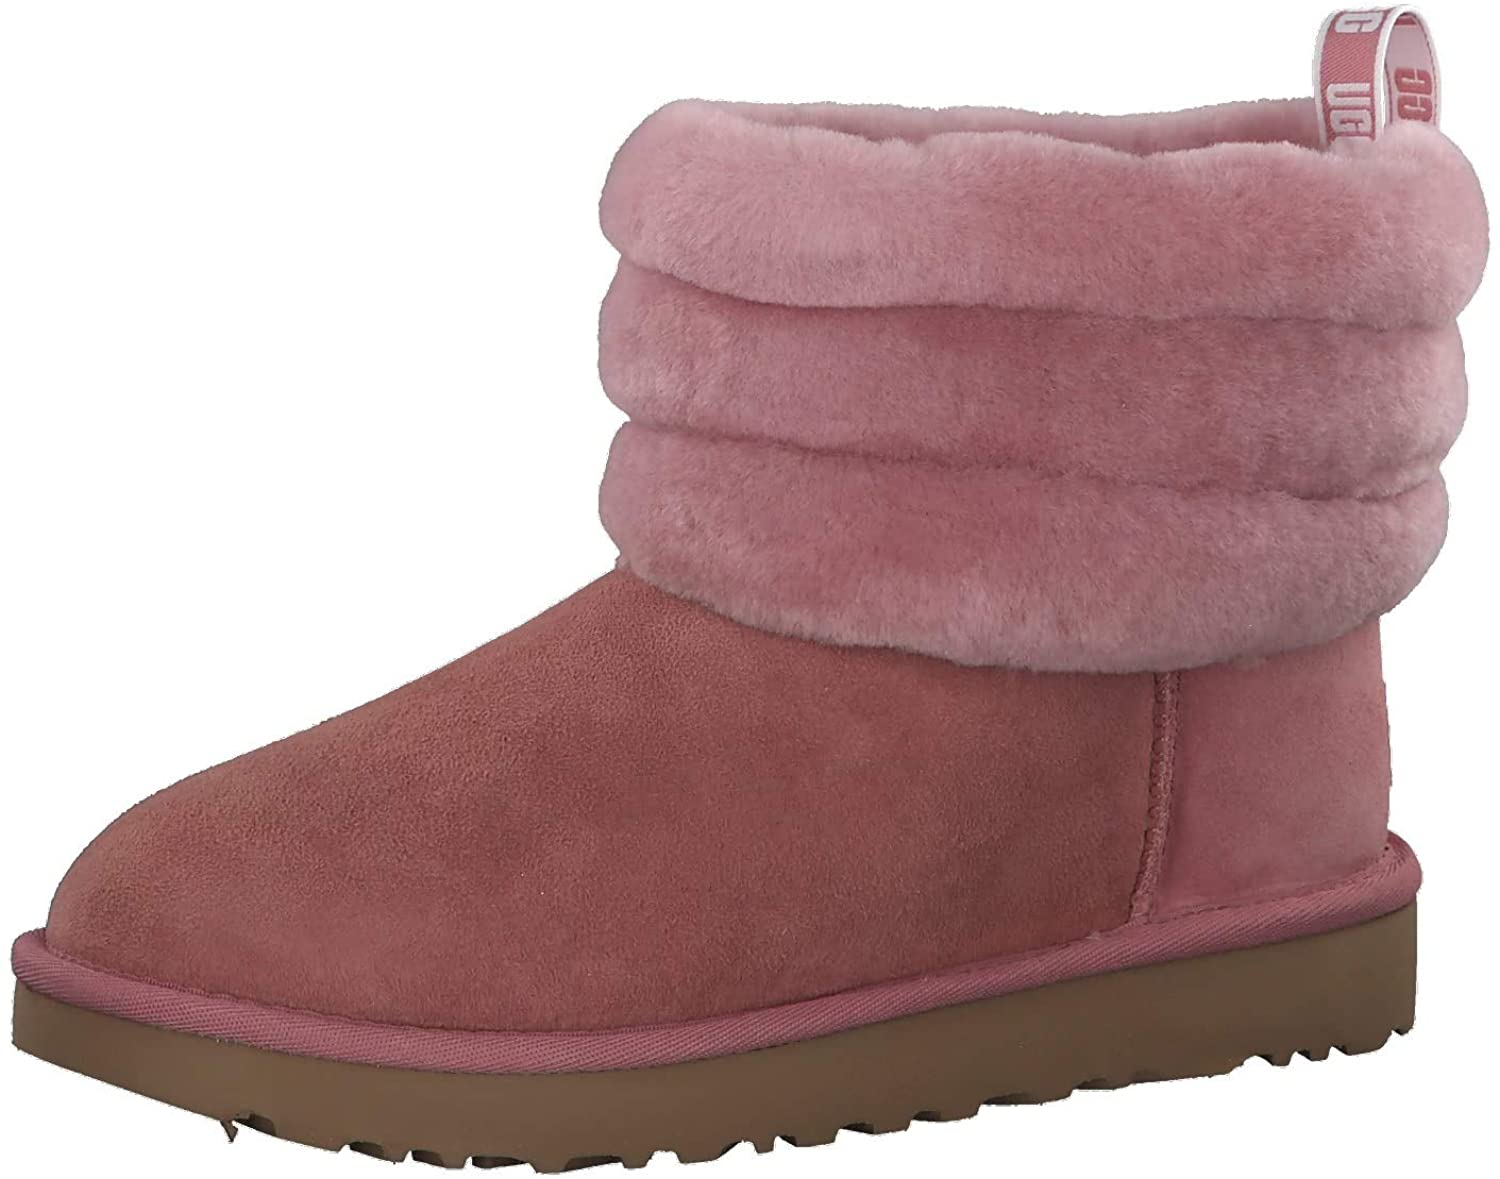 UGG - Boots Fluff Mini Quilted - Pink Dawn